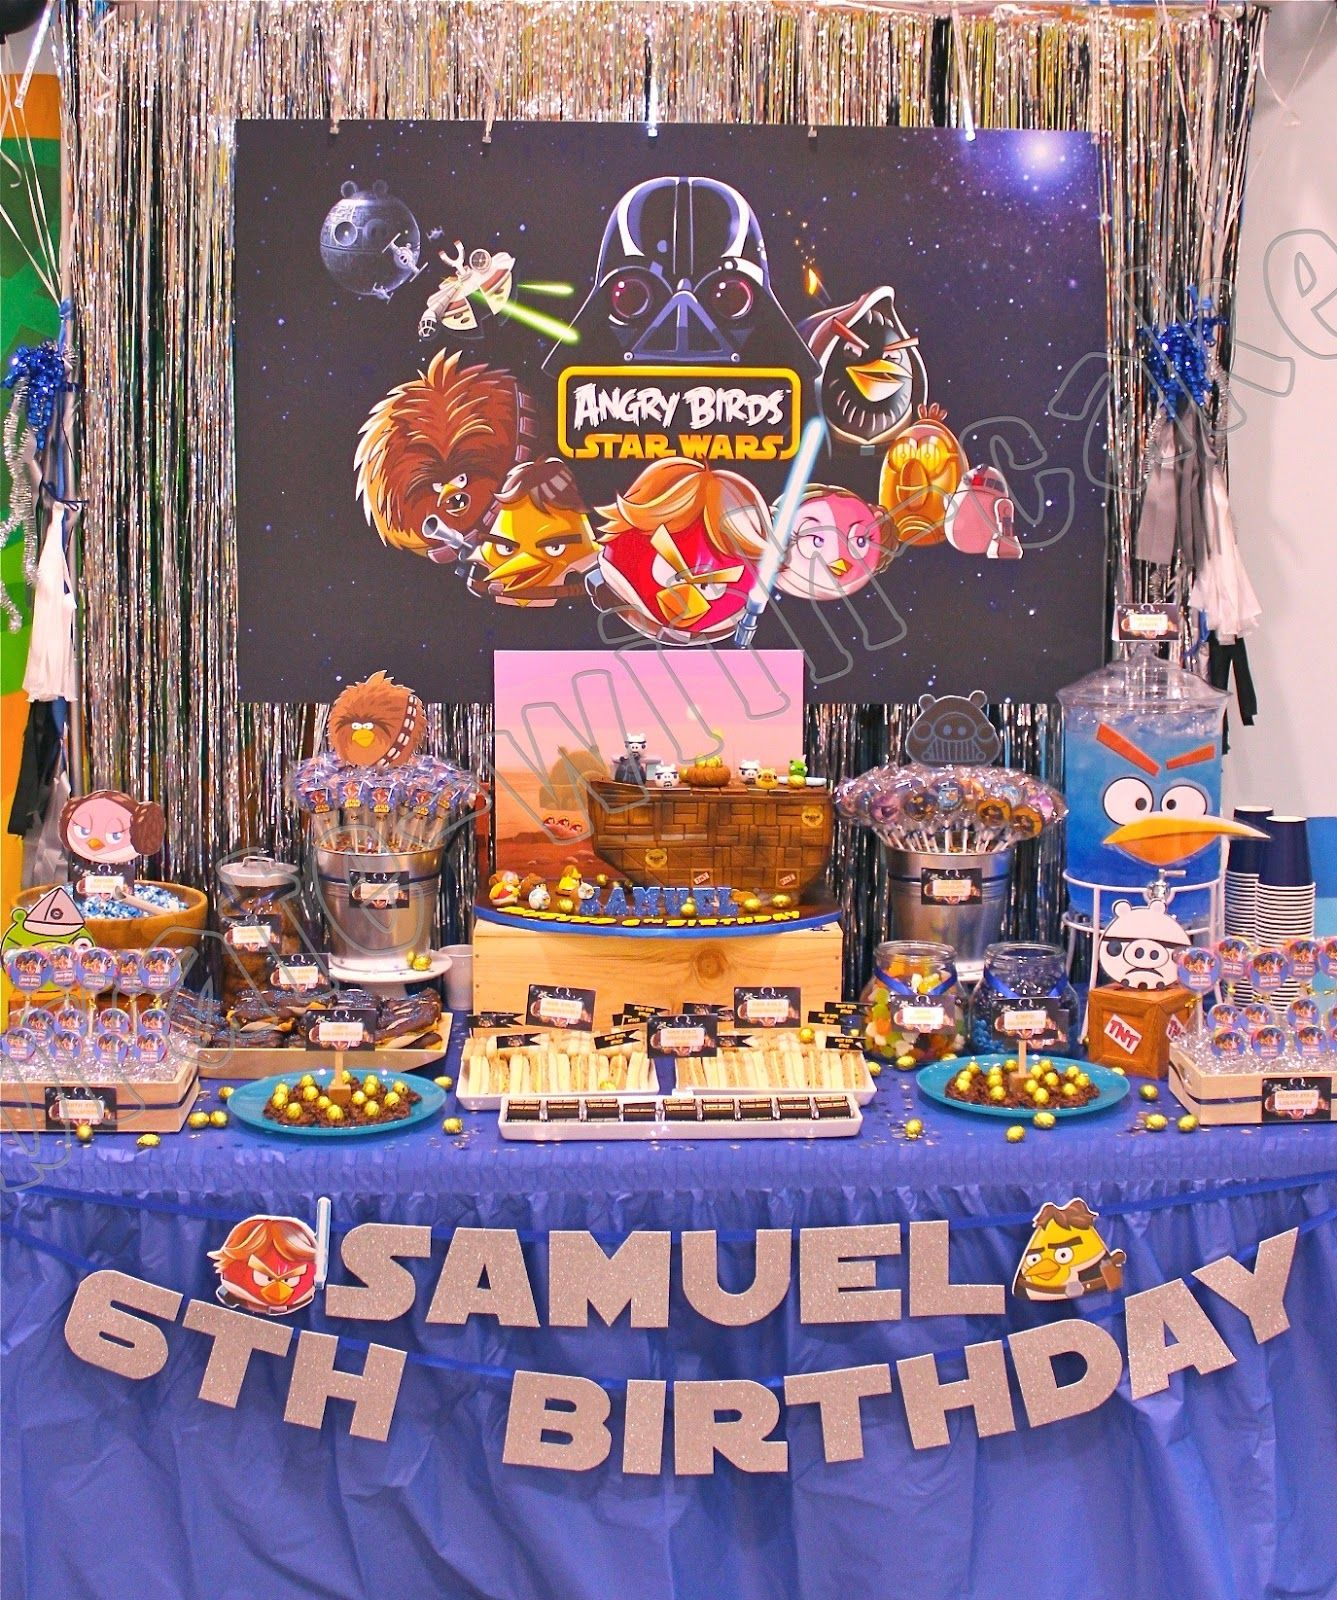 Celebrate With Cake Angry Birds Star Wars Dessert Table